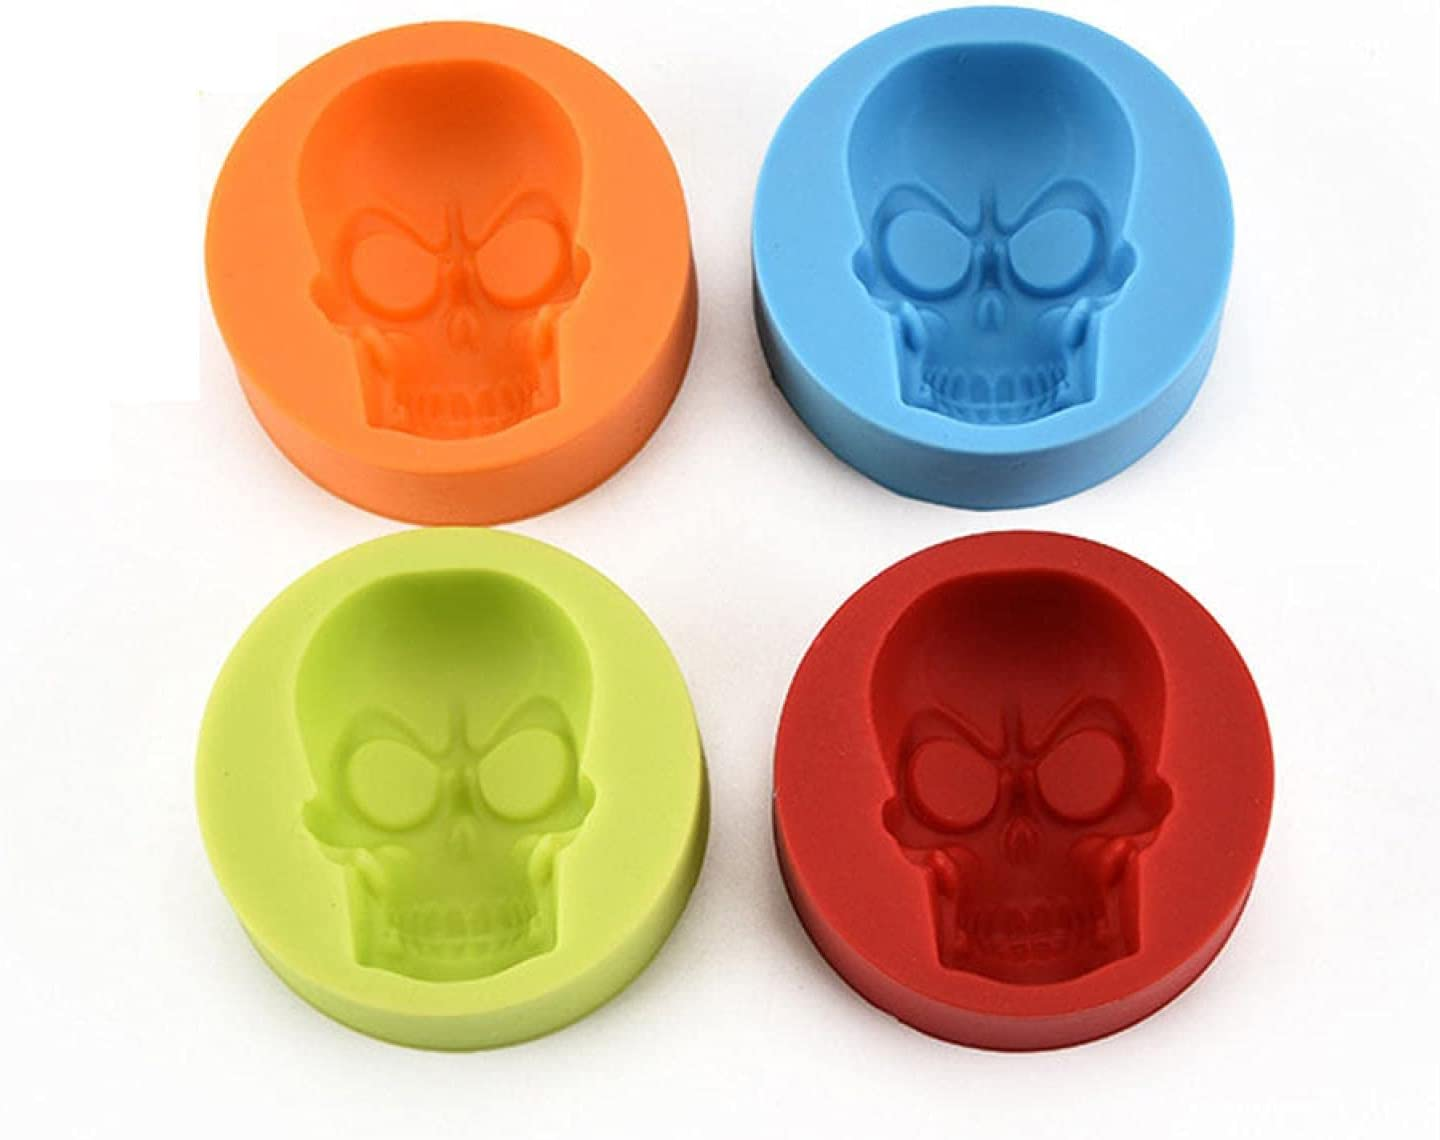 Limited Max 66% OFF price sale 3D Skull Halloween Silicone Mold Fondant Chocolate B Cake Making